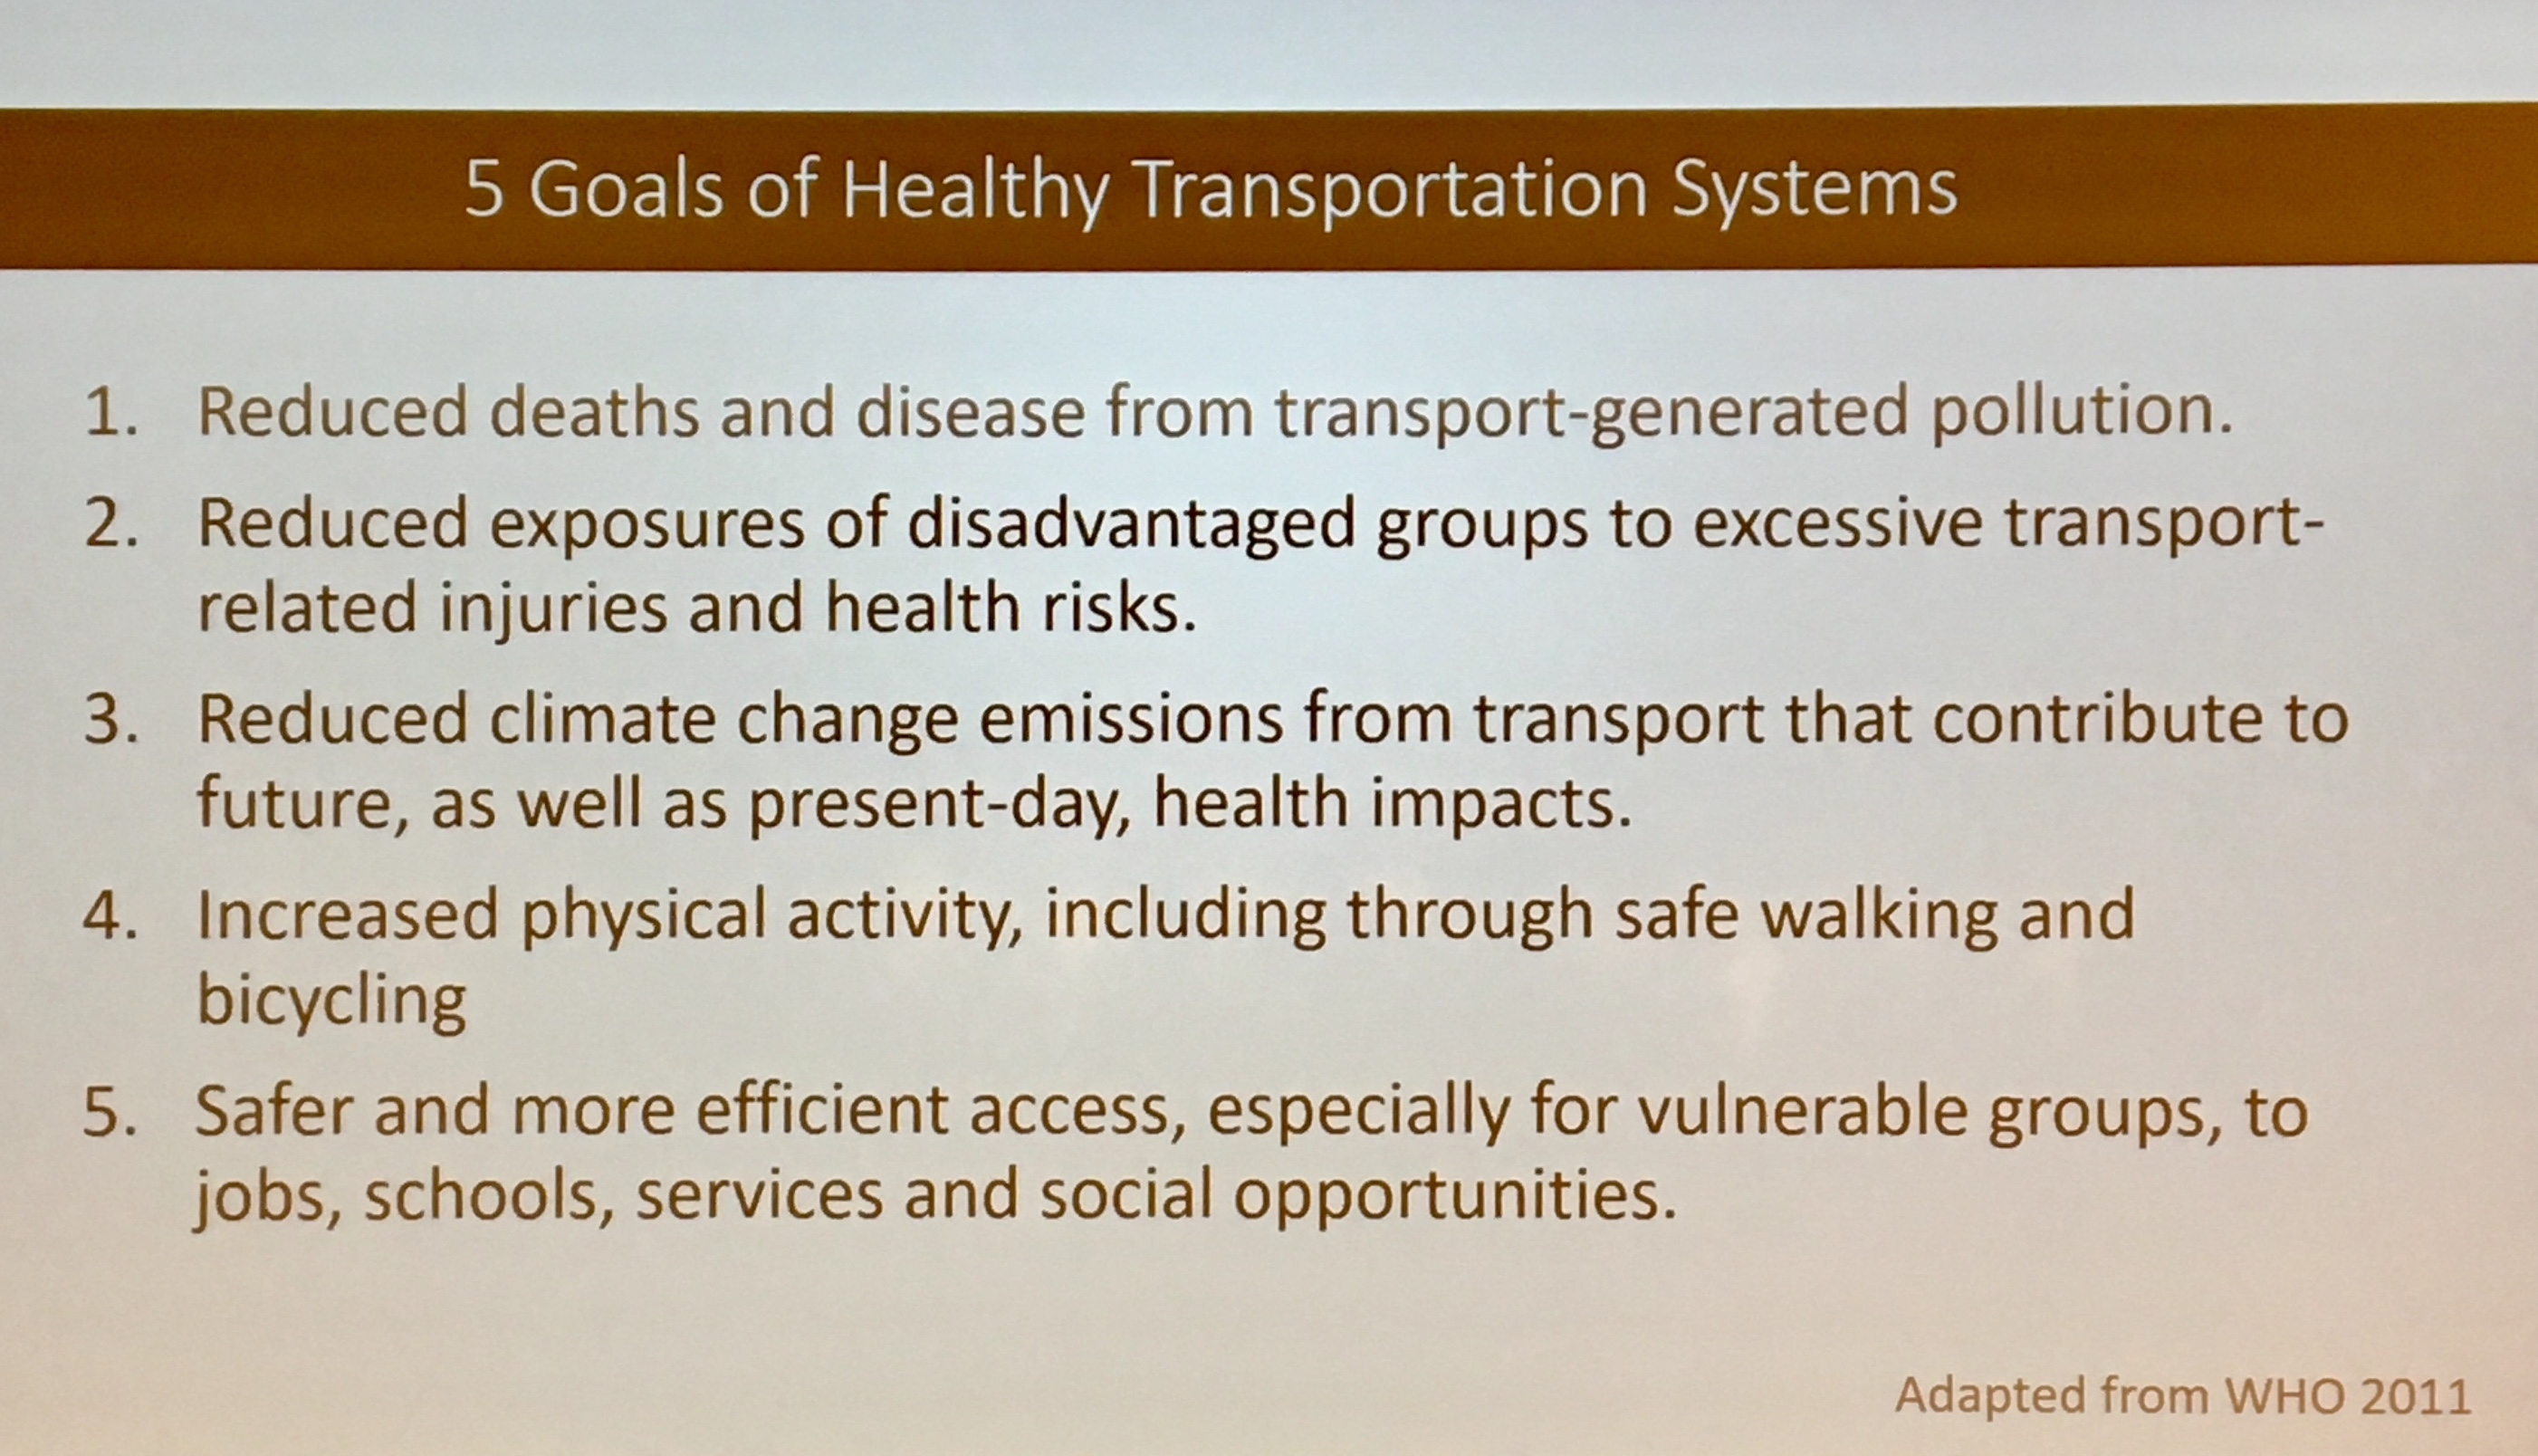 5_goals_of_healthy_transpo_systems.jpg